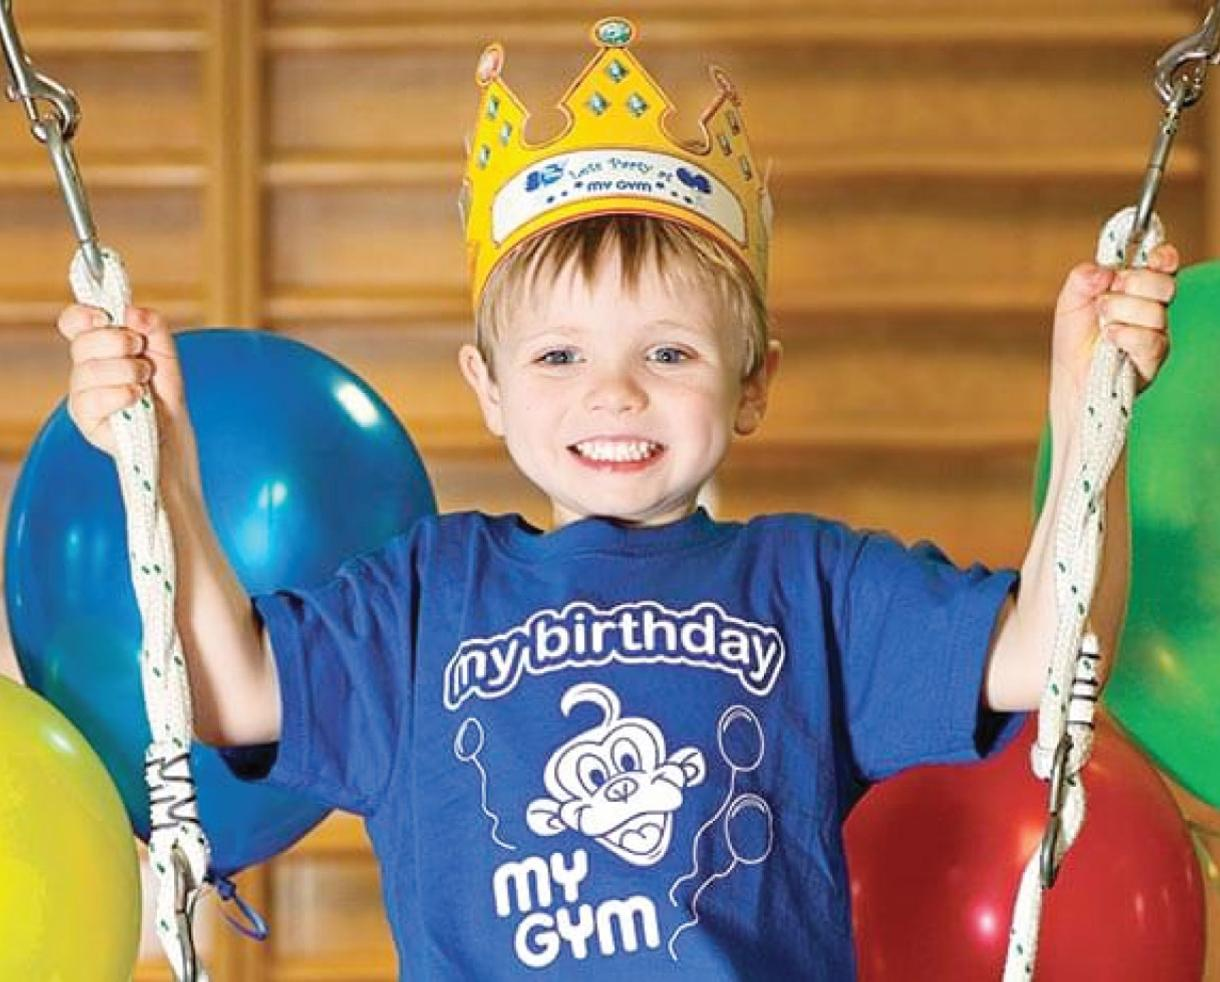 My Gym Chantilly Grand Birthday Party Package